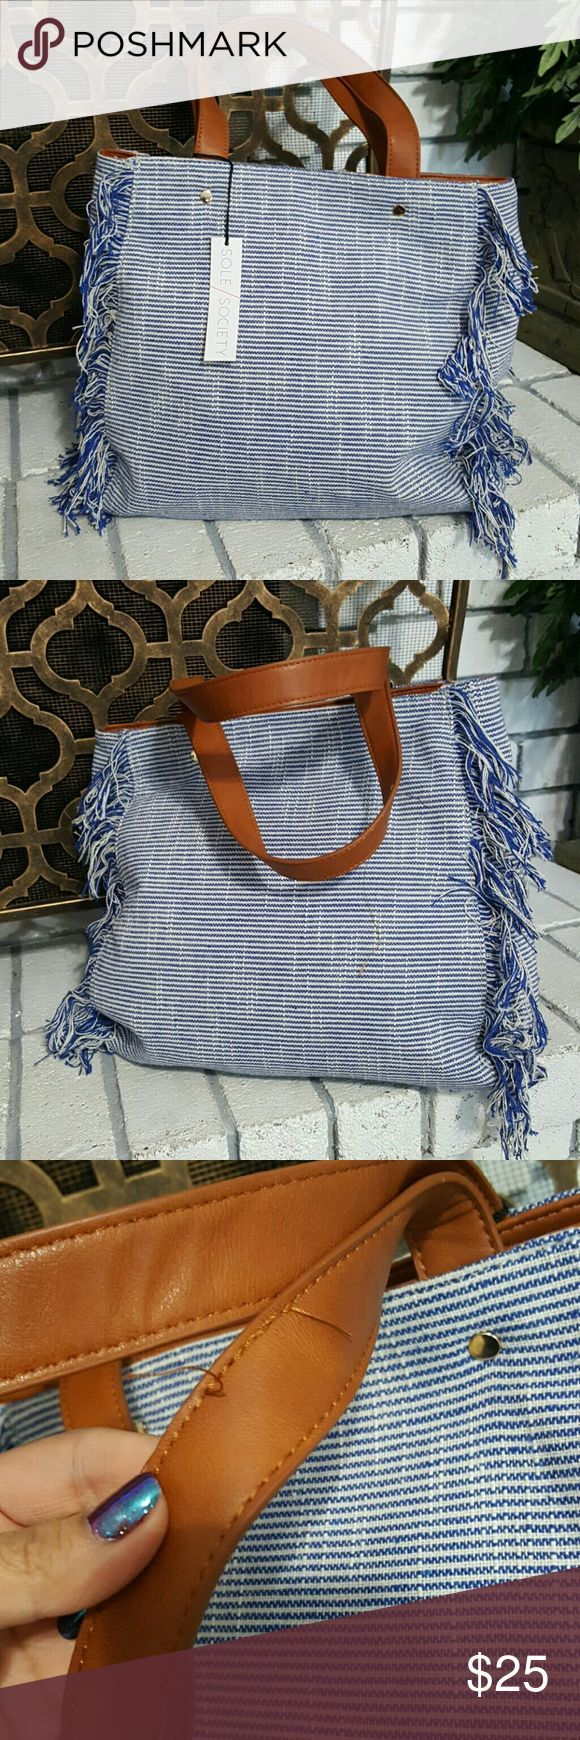 Sole Society Huxlee Fabric Tote Handbag New Sole society handbag.. Called the Huxlee Fabric Tote.. Blue and white stripes with fringe sides.. Has a lo